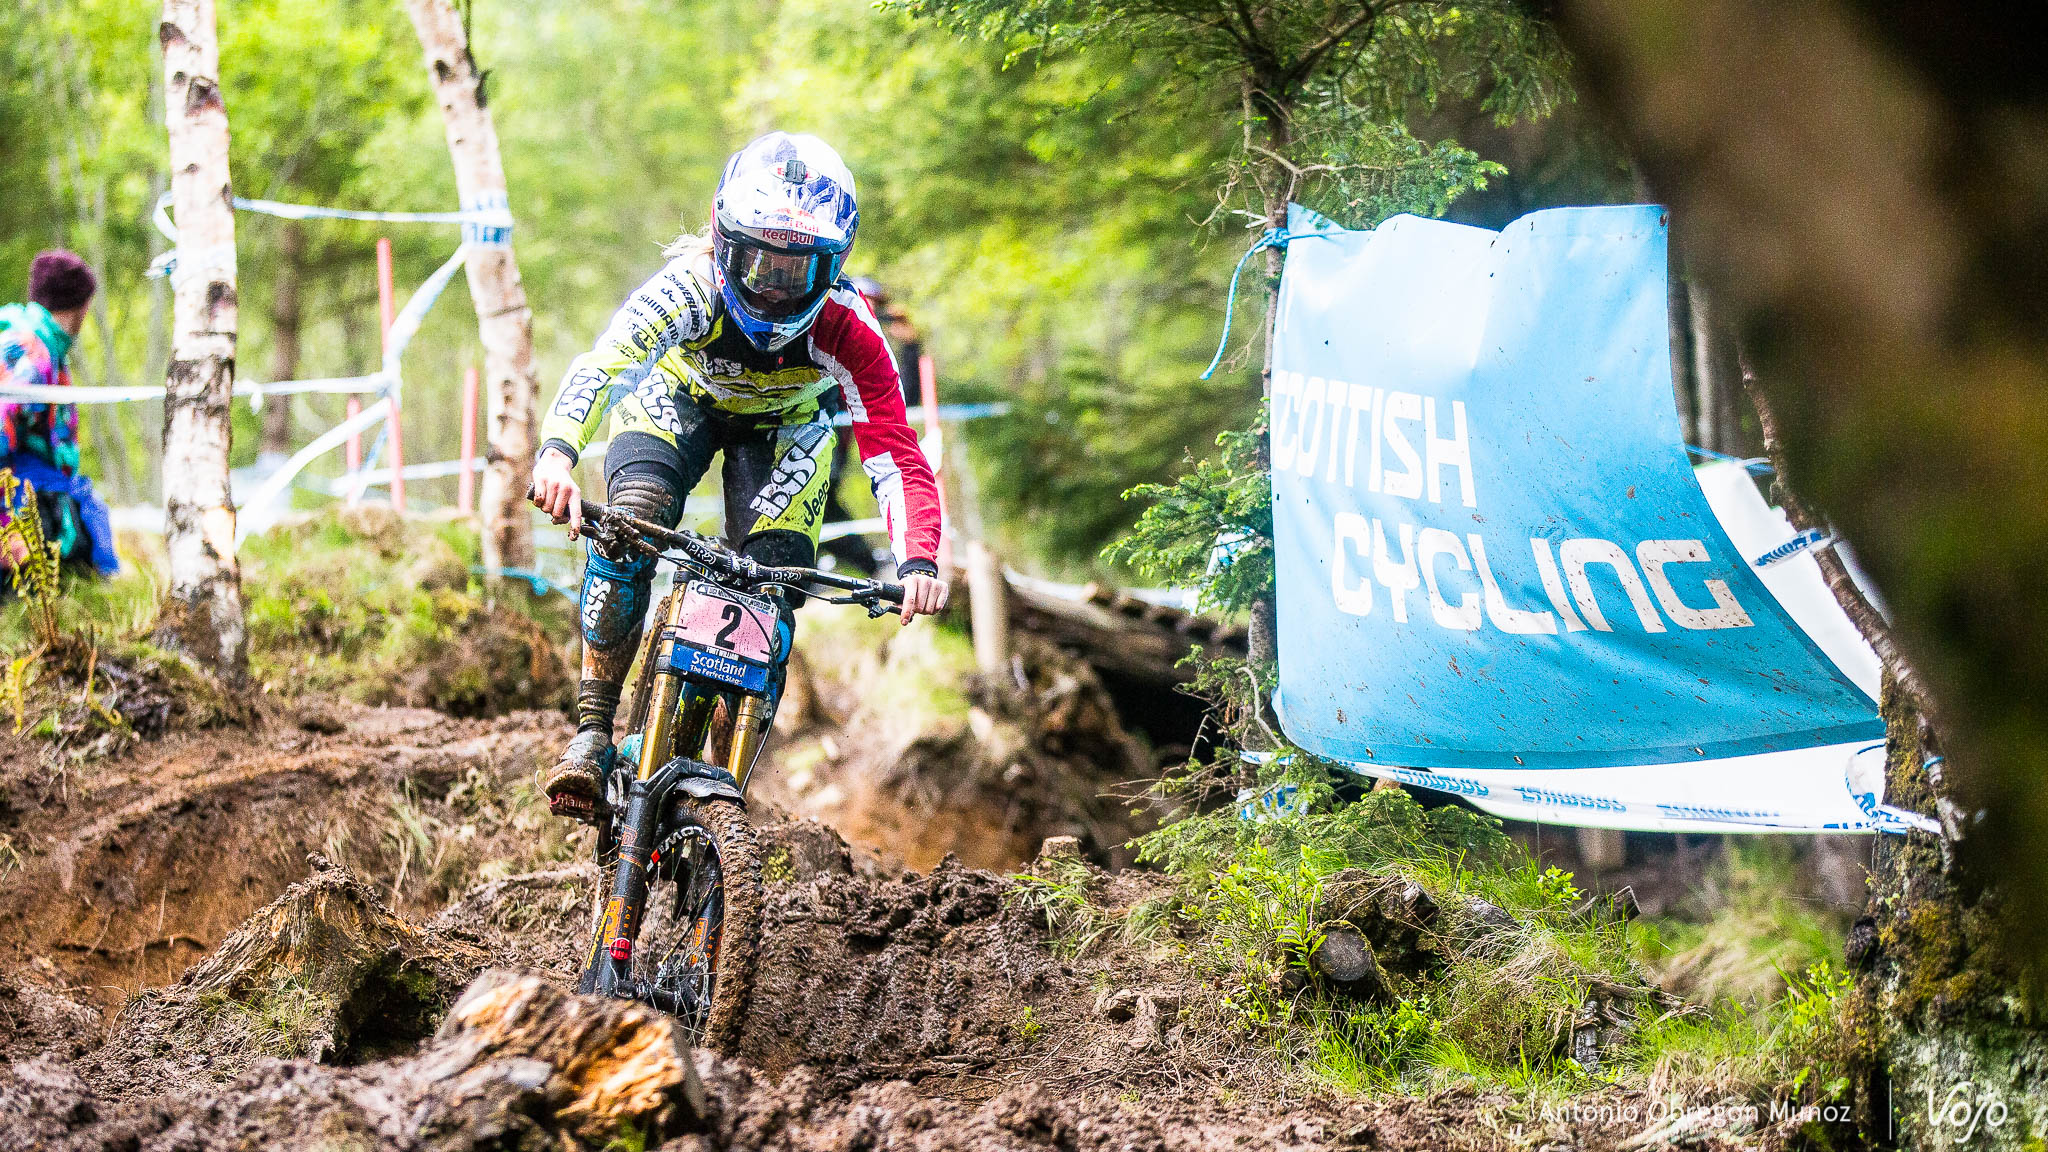 Fort_William_UCI_World_Cup_DH_2015_(qualif_Femmes)_(RachelAtherton)_Copyright_Antonio_Obregon_VojoMag-2